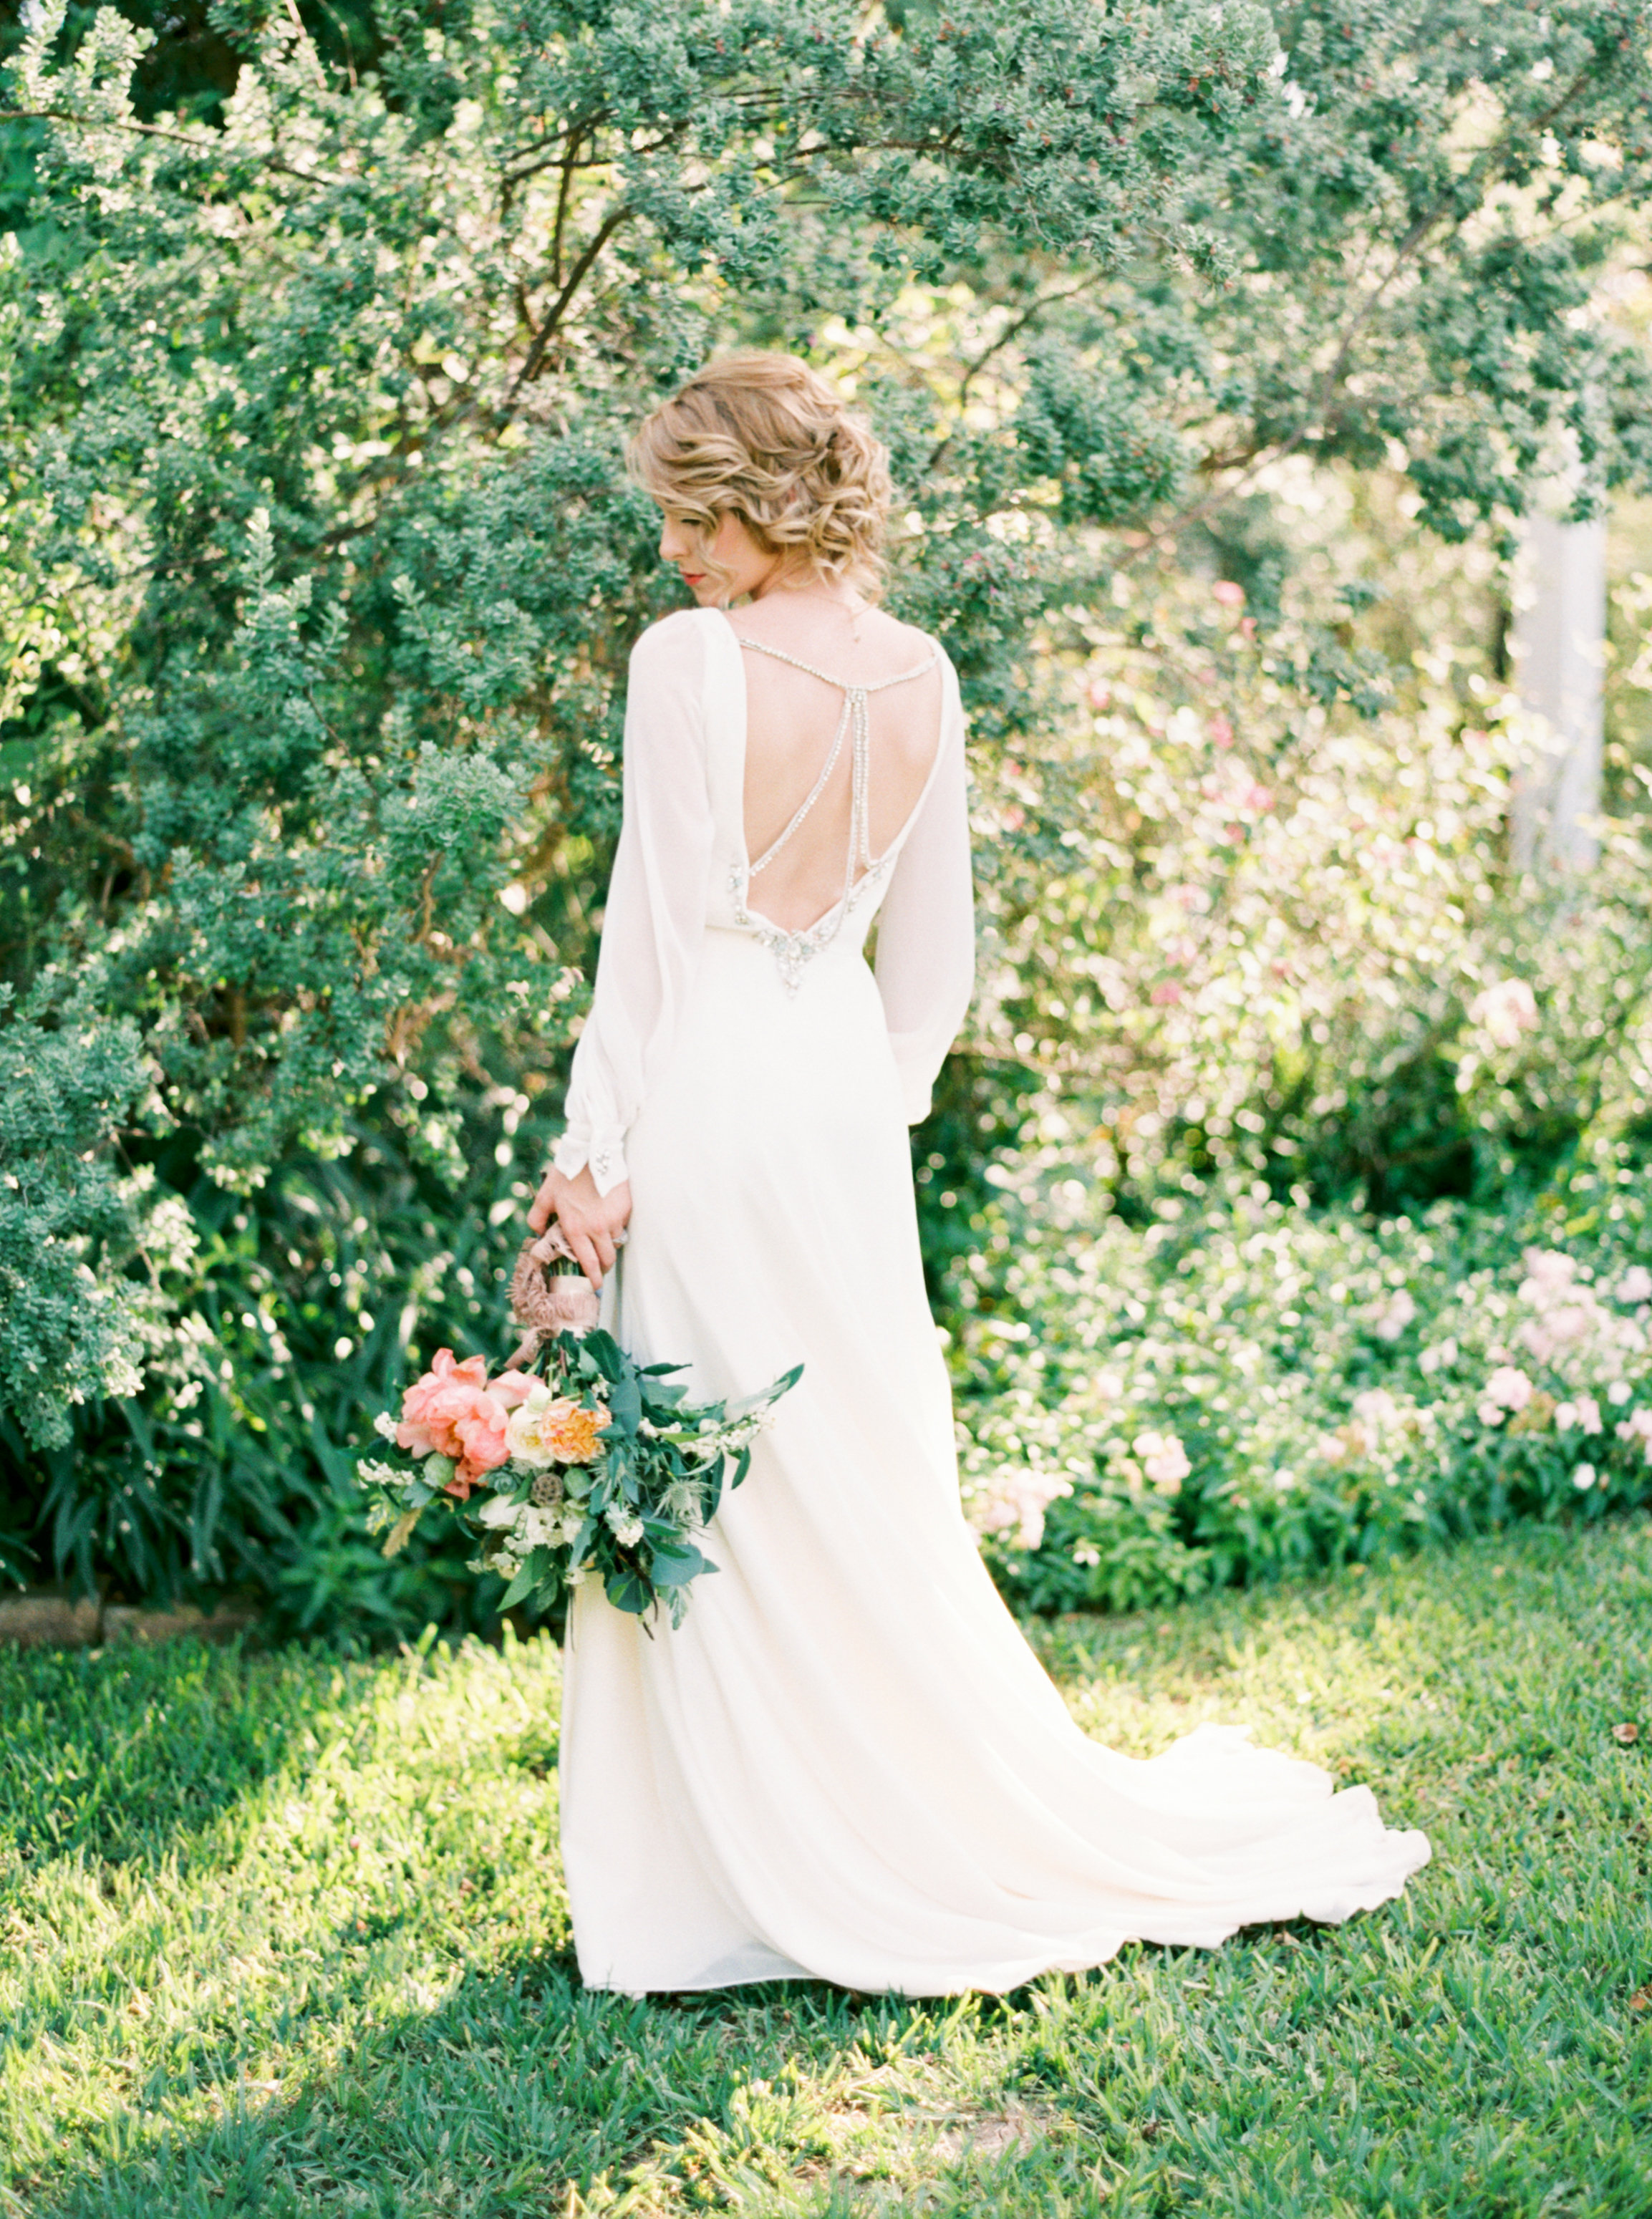 Shalyn-Nelson-photography-ivory-and-beau-bridal-boutique-ivory-and-beau-wedding-planning-barr-mansion-blush-by-hayley-paige-vienna-sweet-magnolia-floral-austin-texas-wedding-savannah-wedding-savannah-bridal-boutique-savannah-weddings-5.jpg